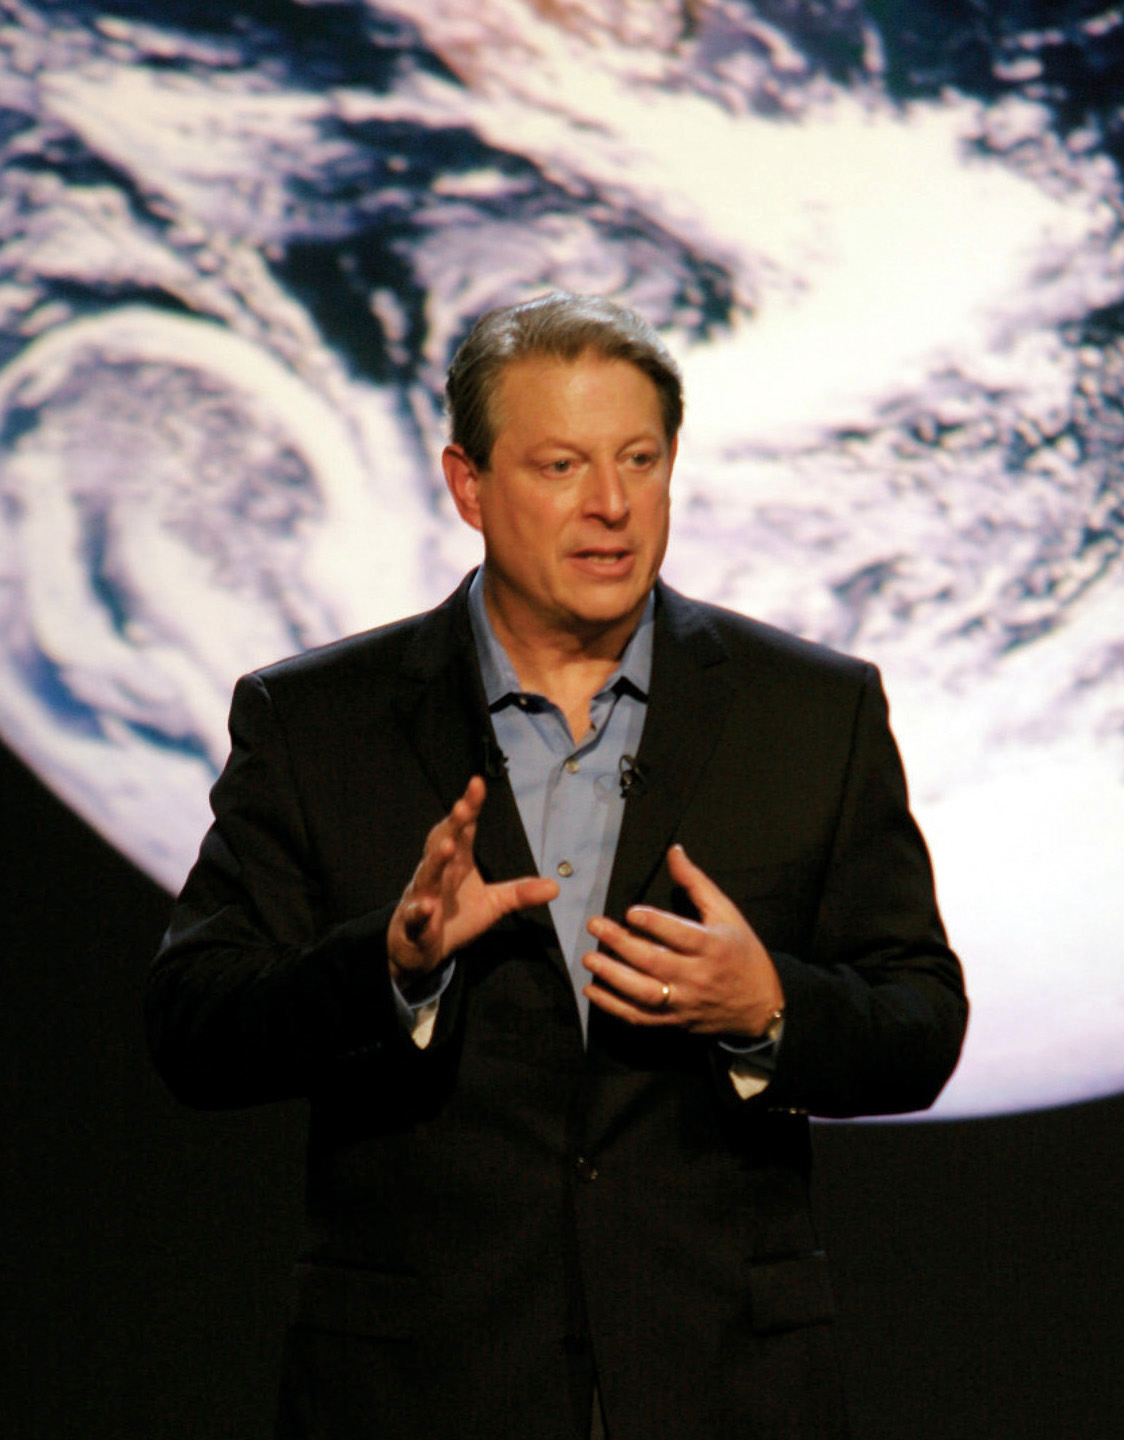 Al Gore - An Inconvenient Truth Documentary